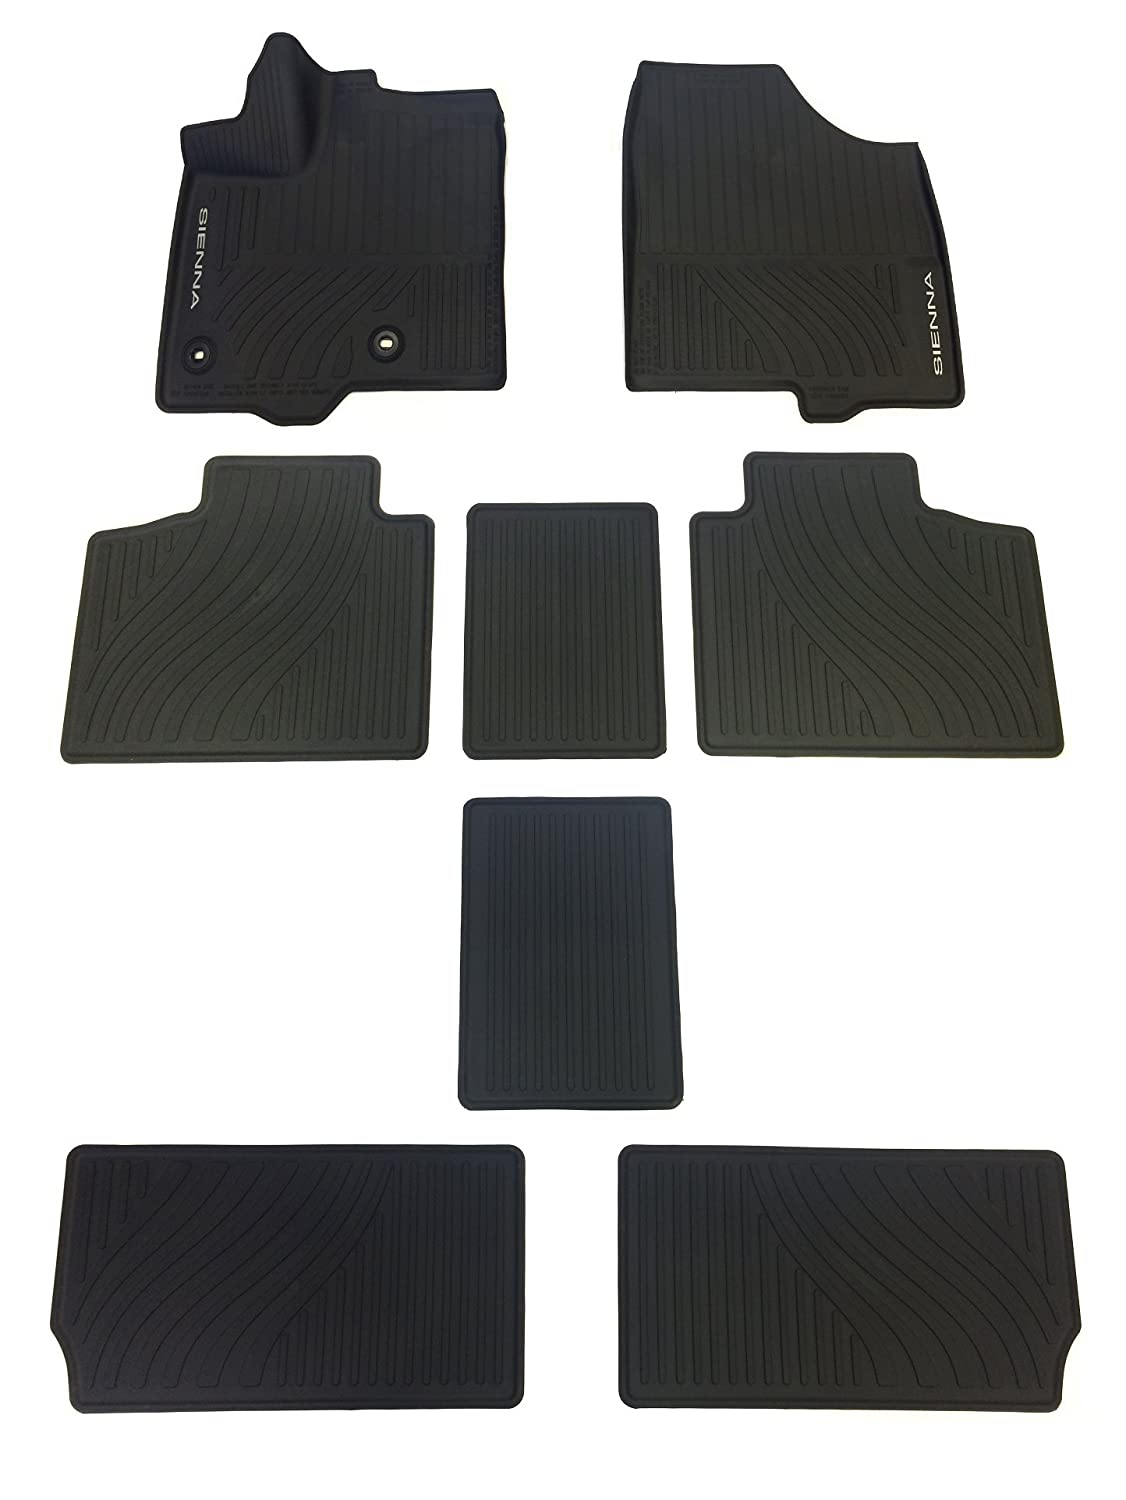 Factory Floor Mats For 2017 Sienna To Go In My 2011 Van